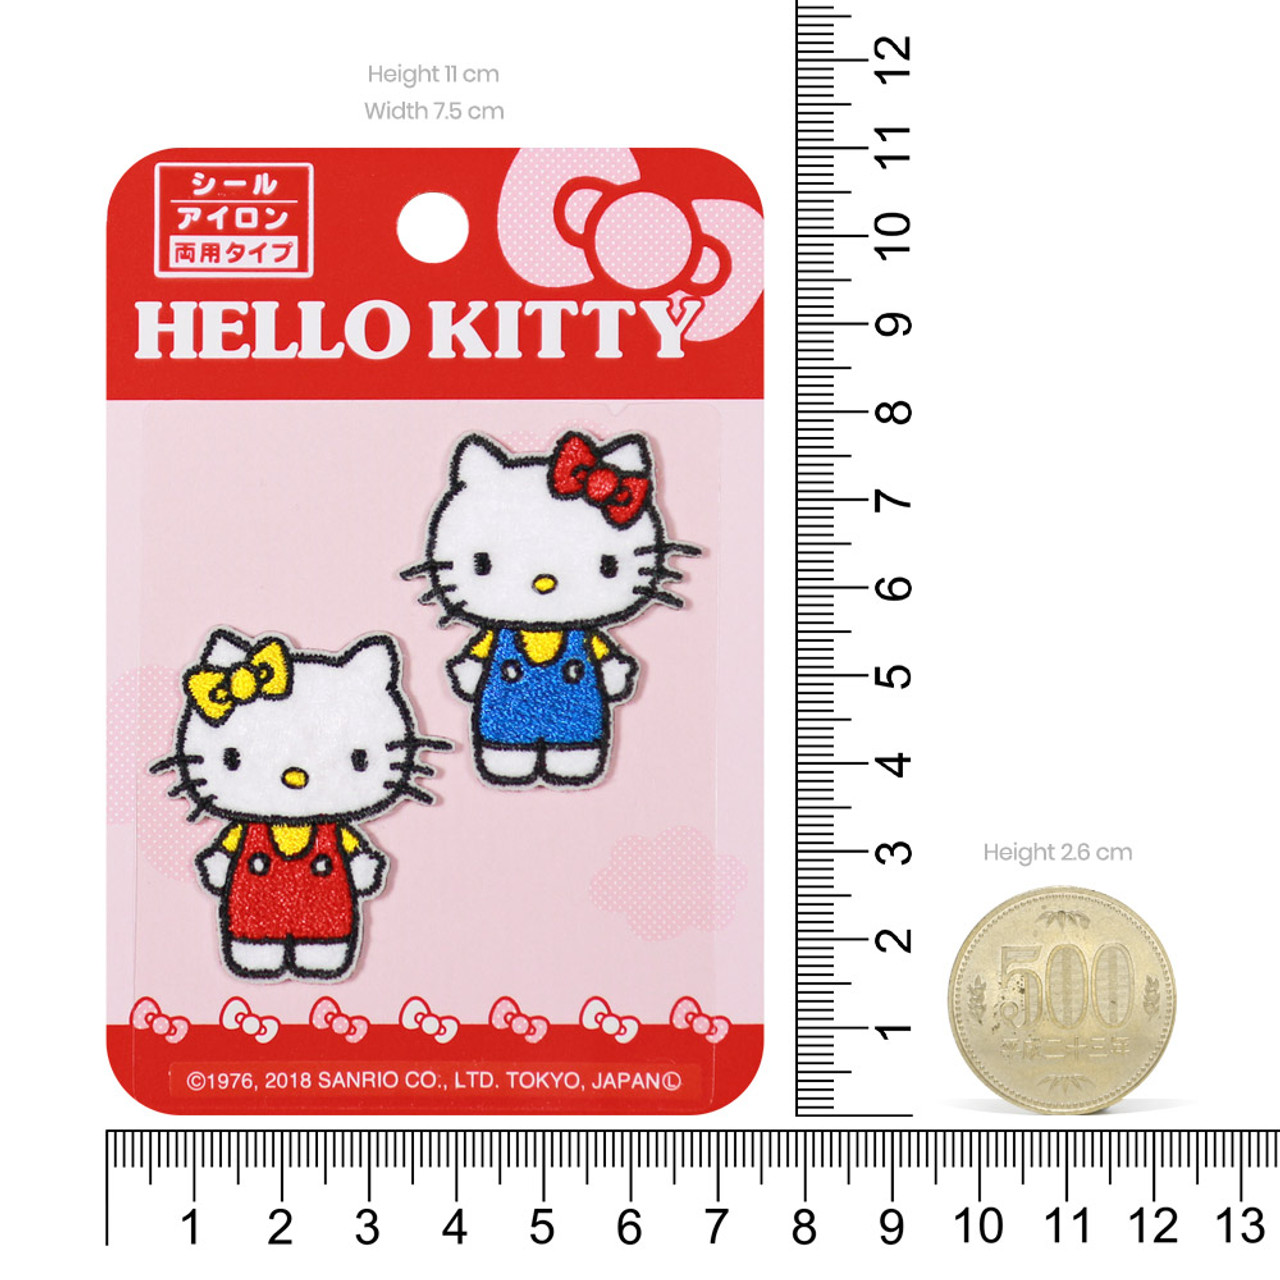 Sanrio Double Hello Kitty Iron On Patch BC17 ( Proportion )